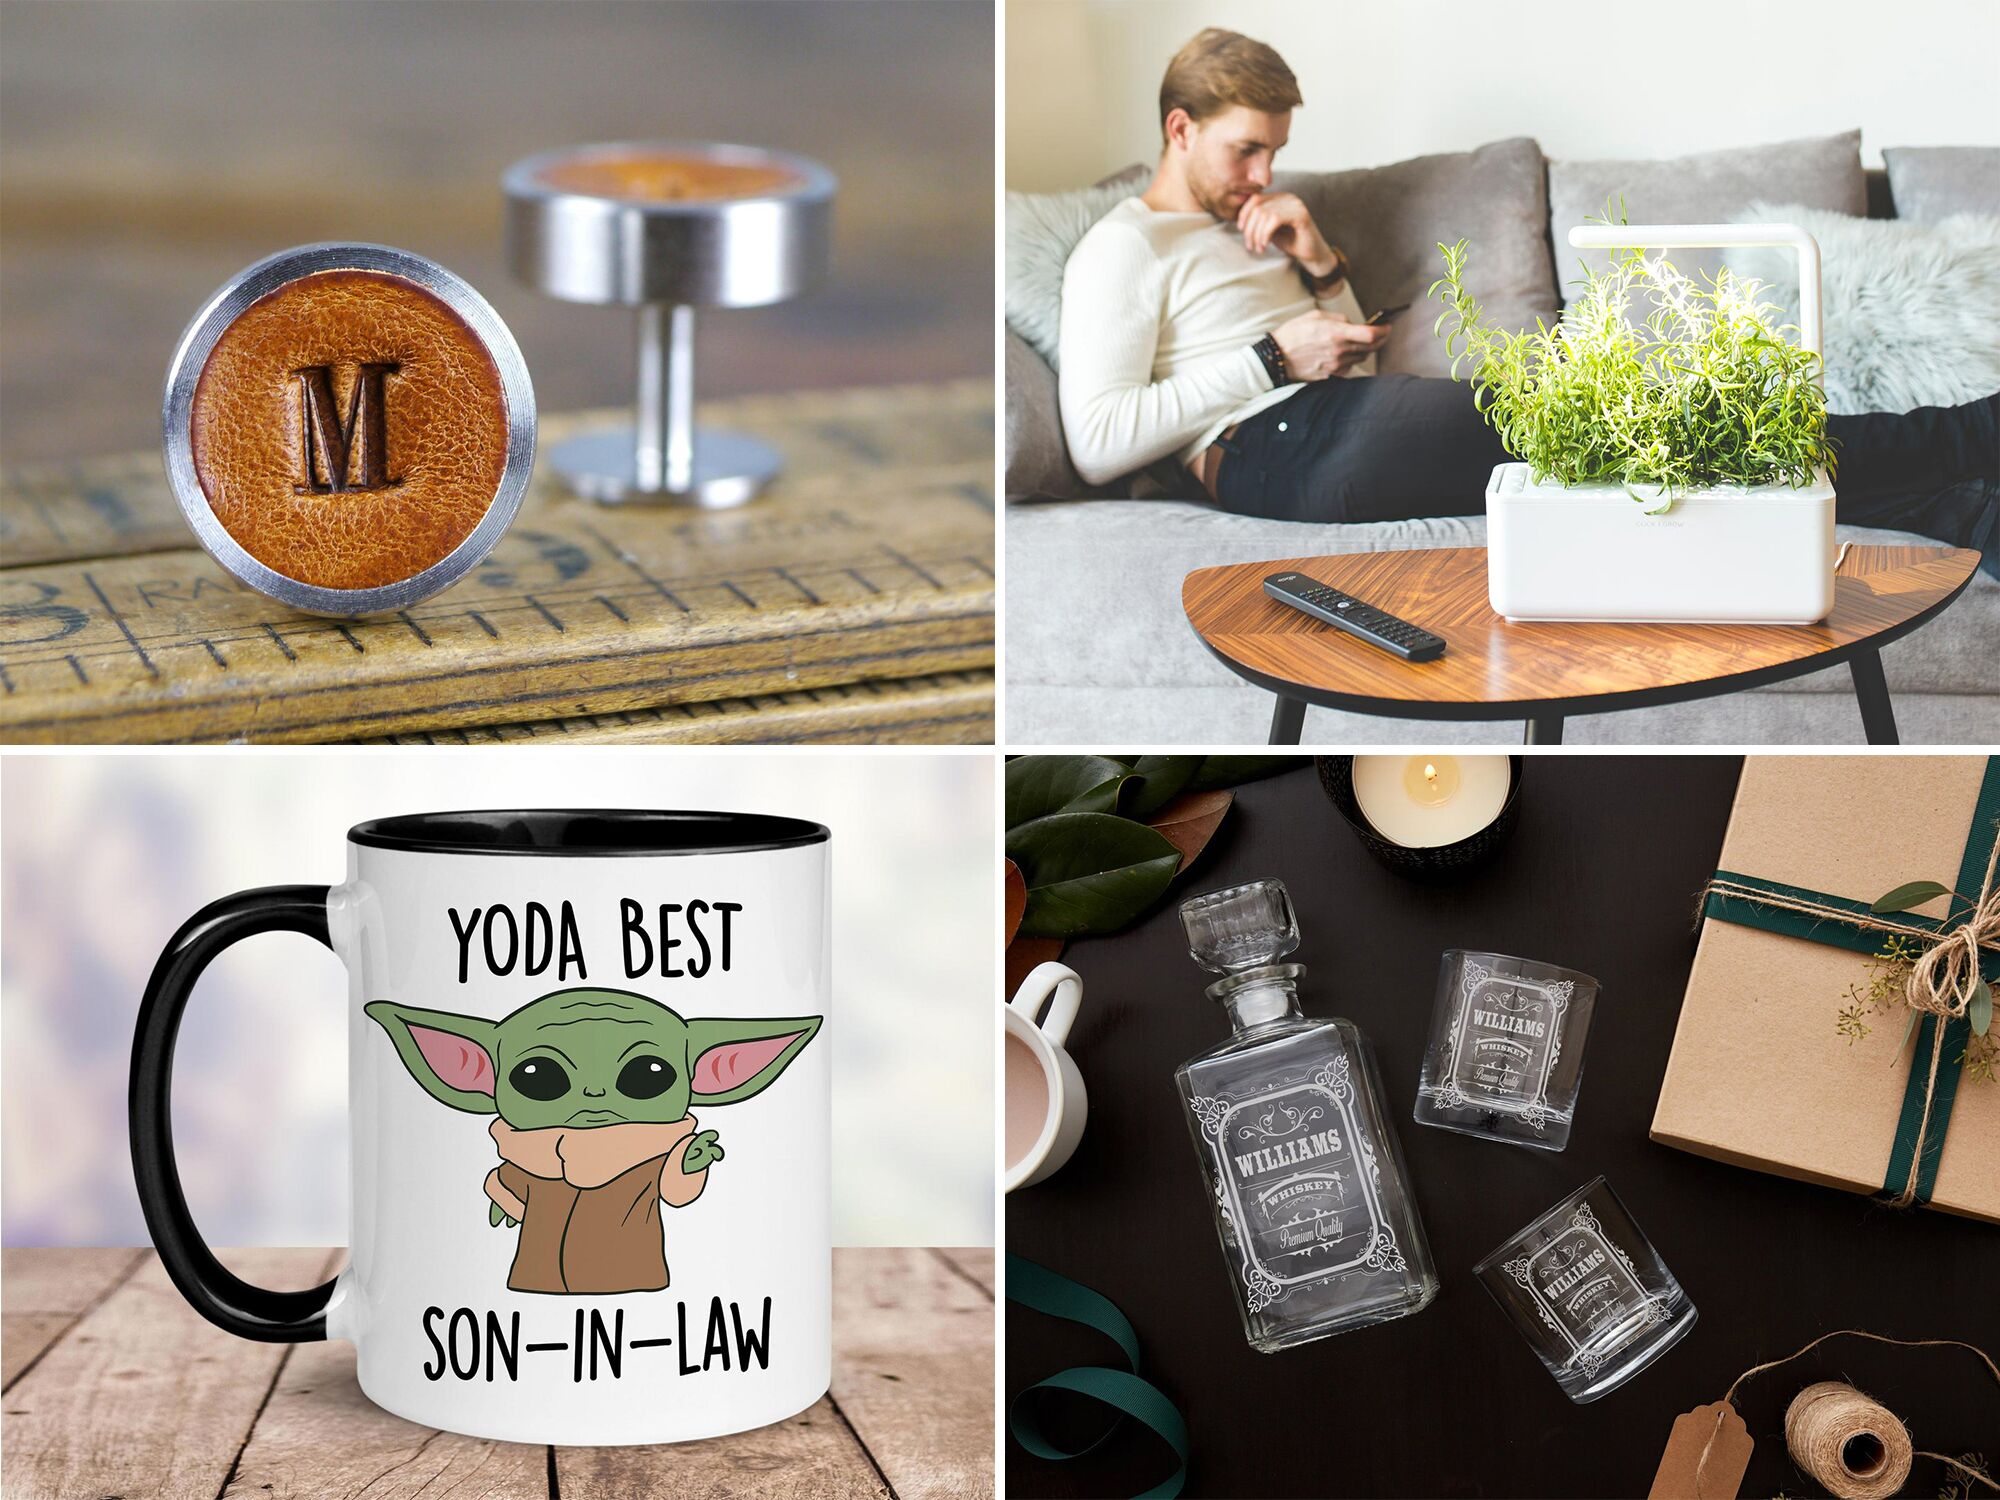 32 Clever Gifts For Your Son In Law